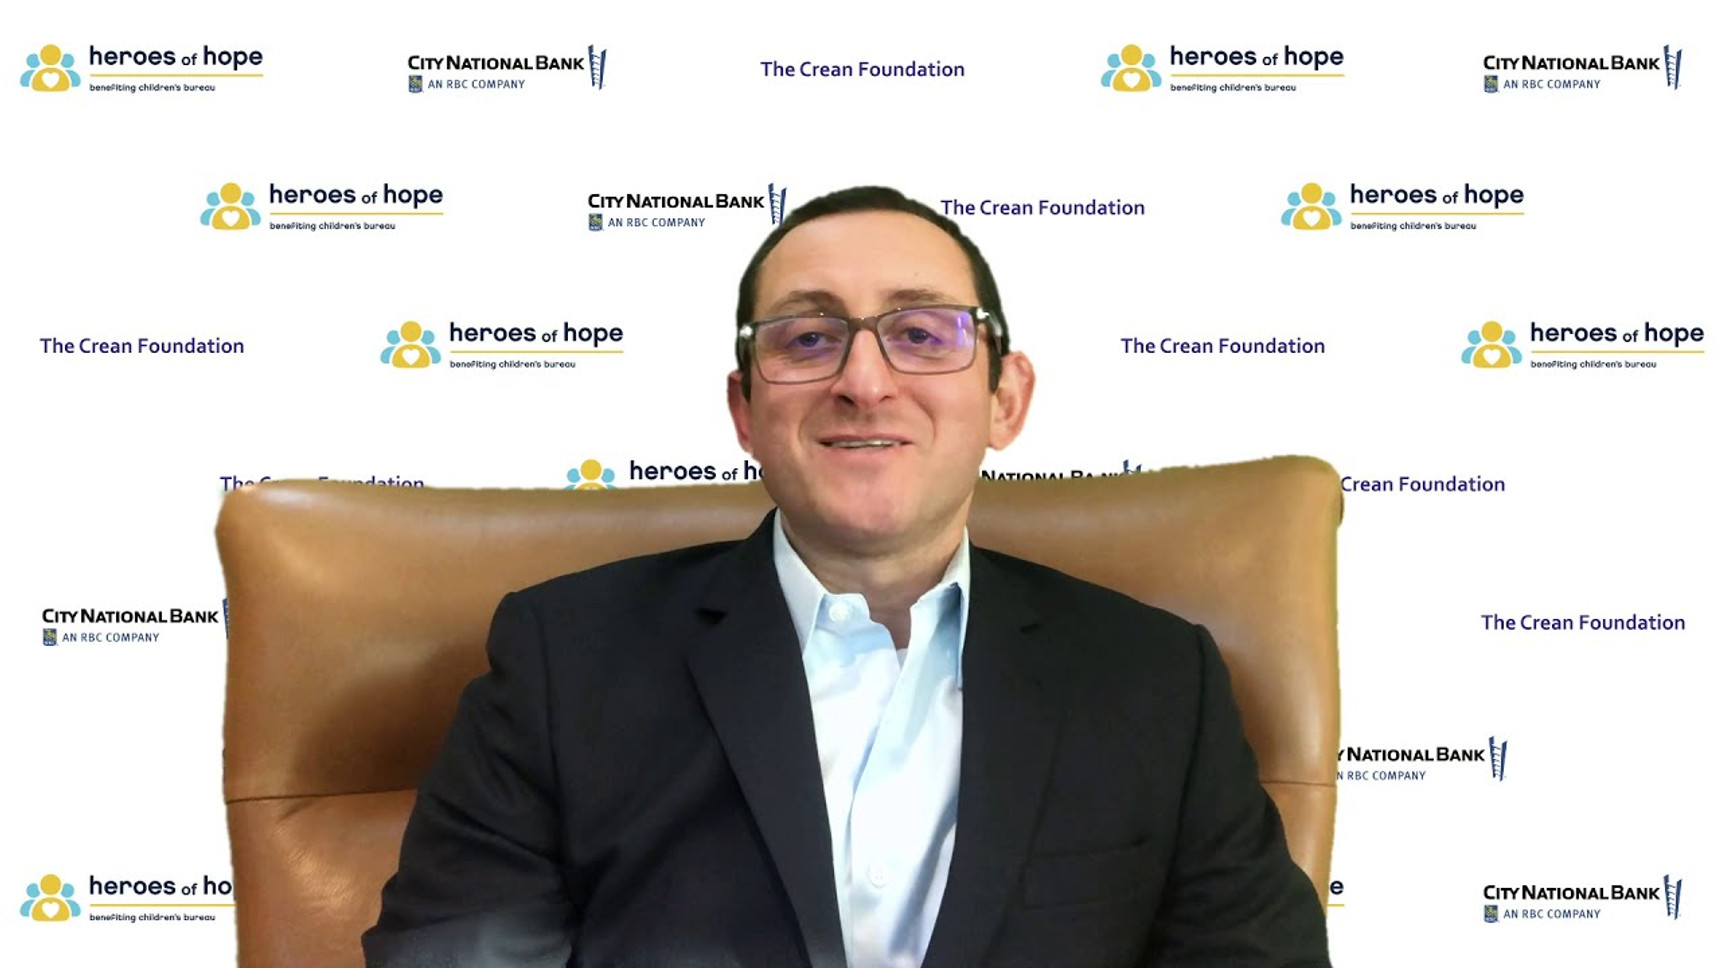 ep. 01 | heroes of hope launch with city national bank